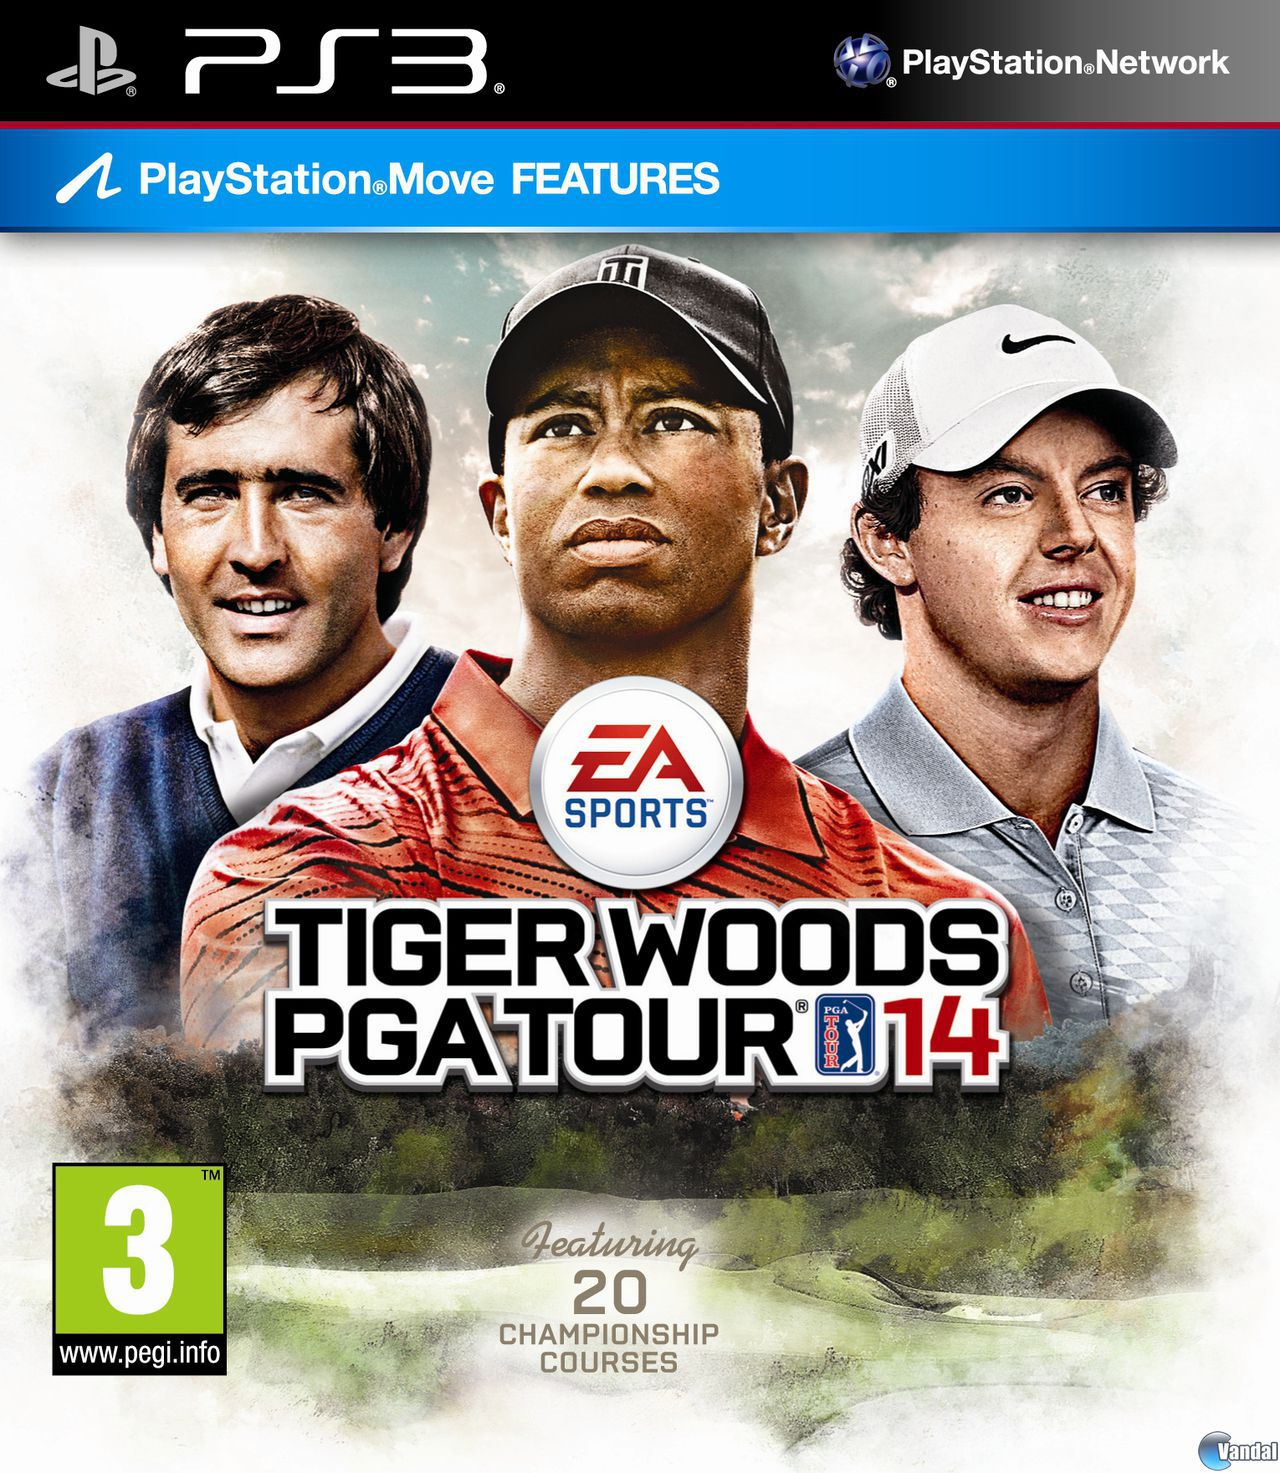 Tiger Woods Pga Tour Wii Game